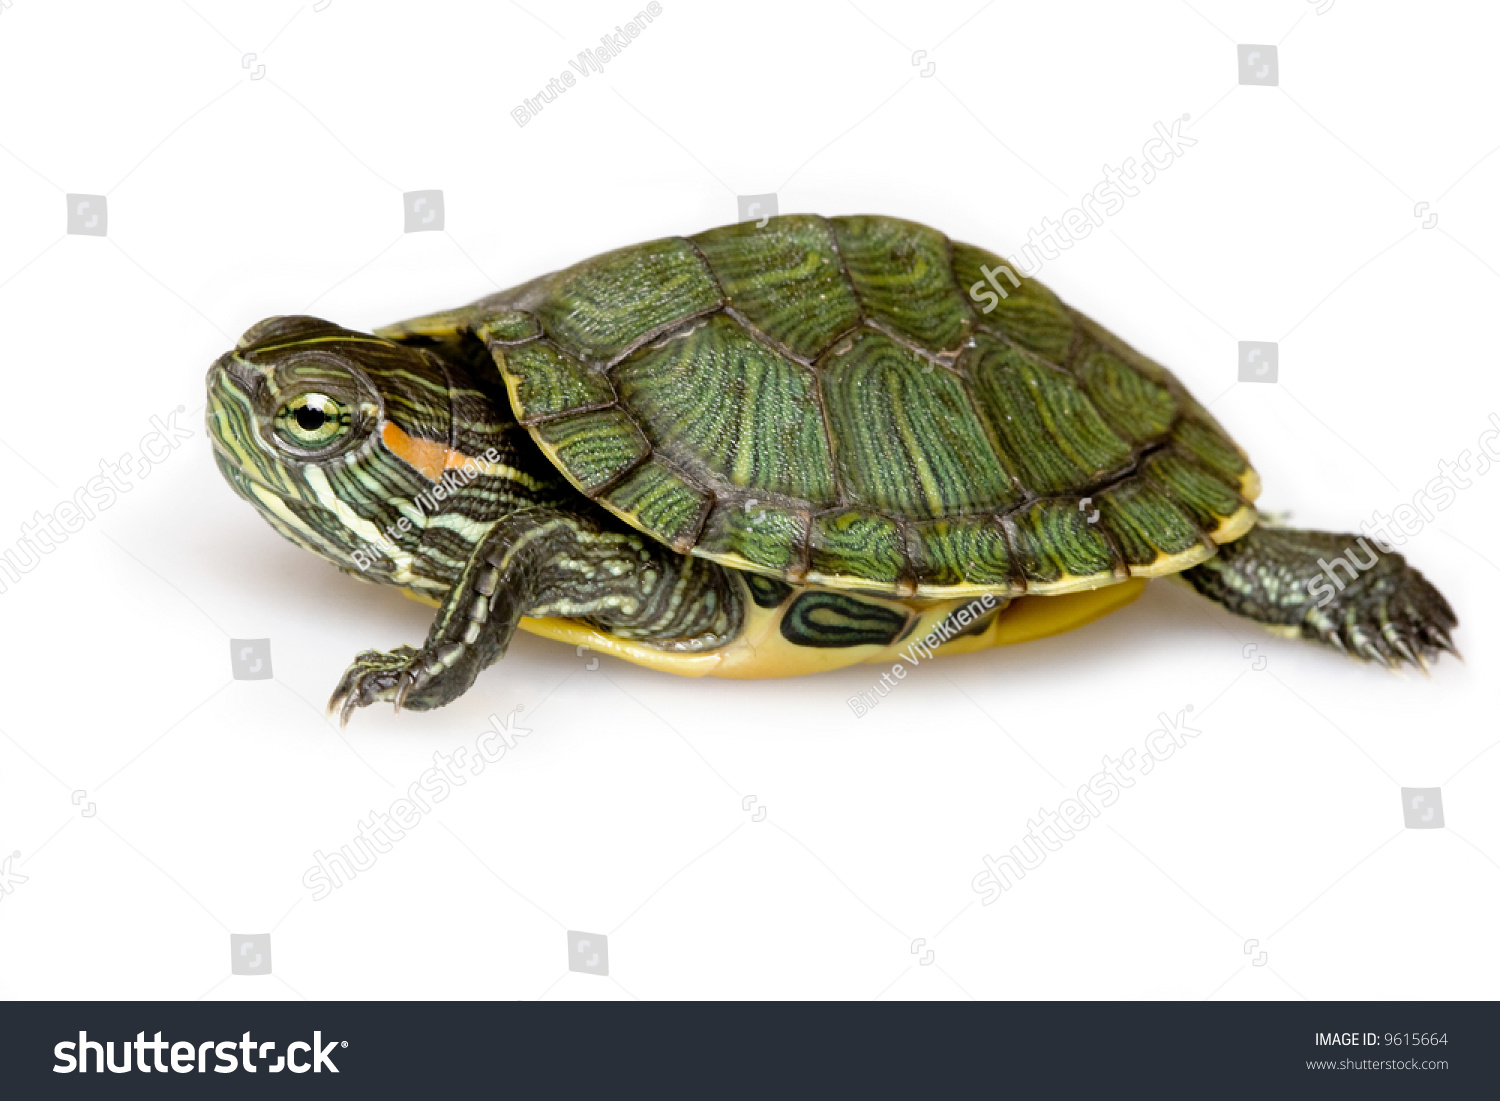 Redeared slider trachemys scripta elegans stock photo for Trachemys scripta